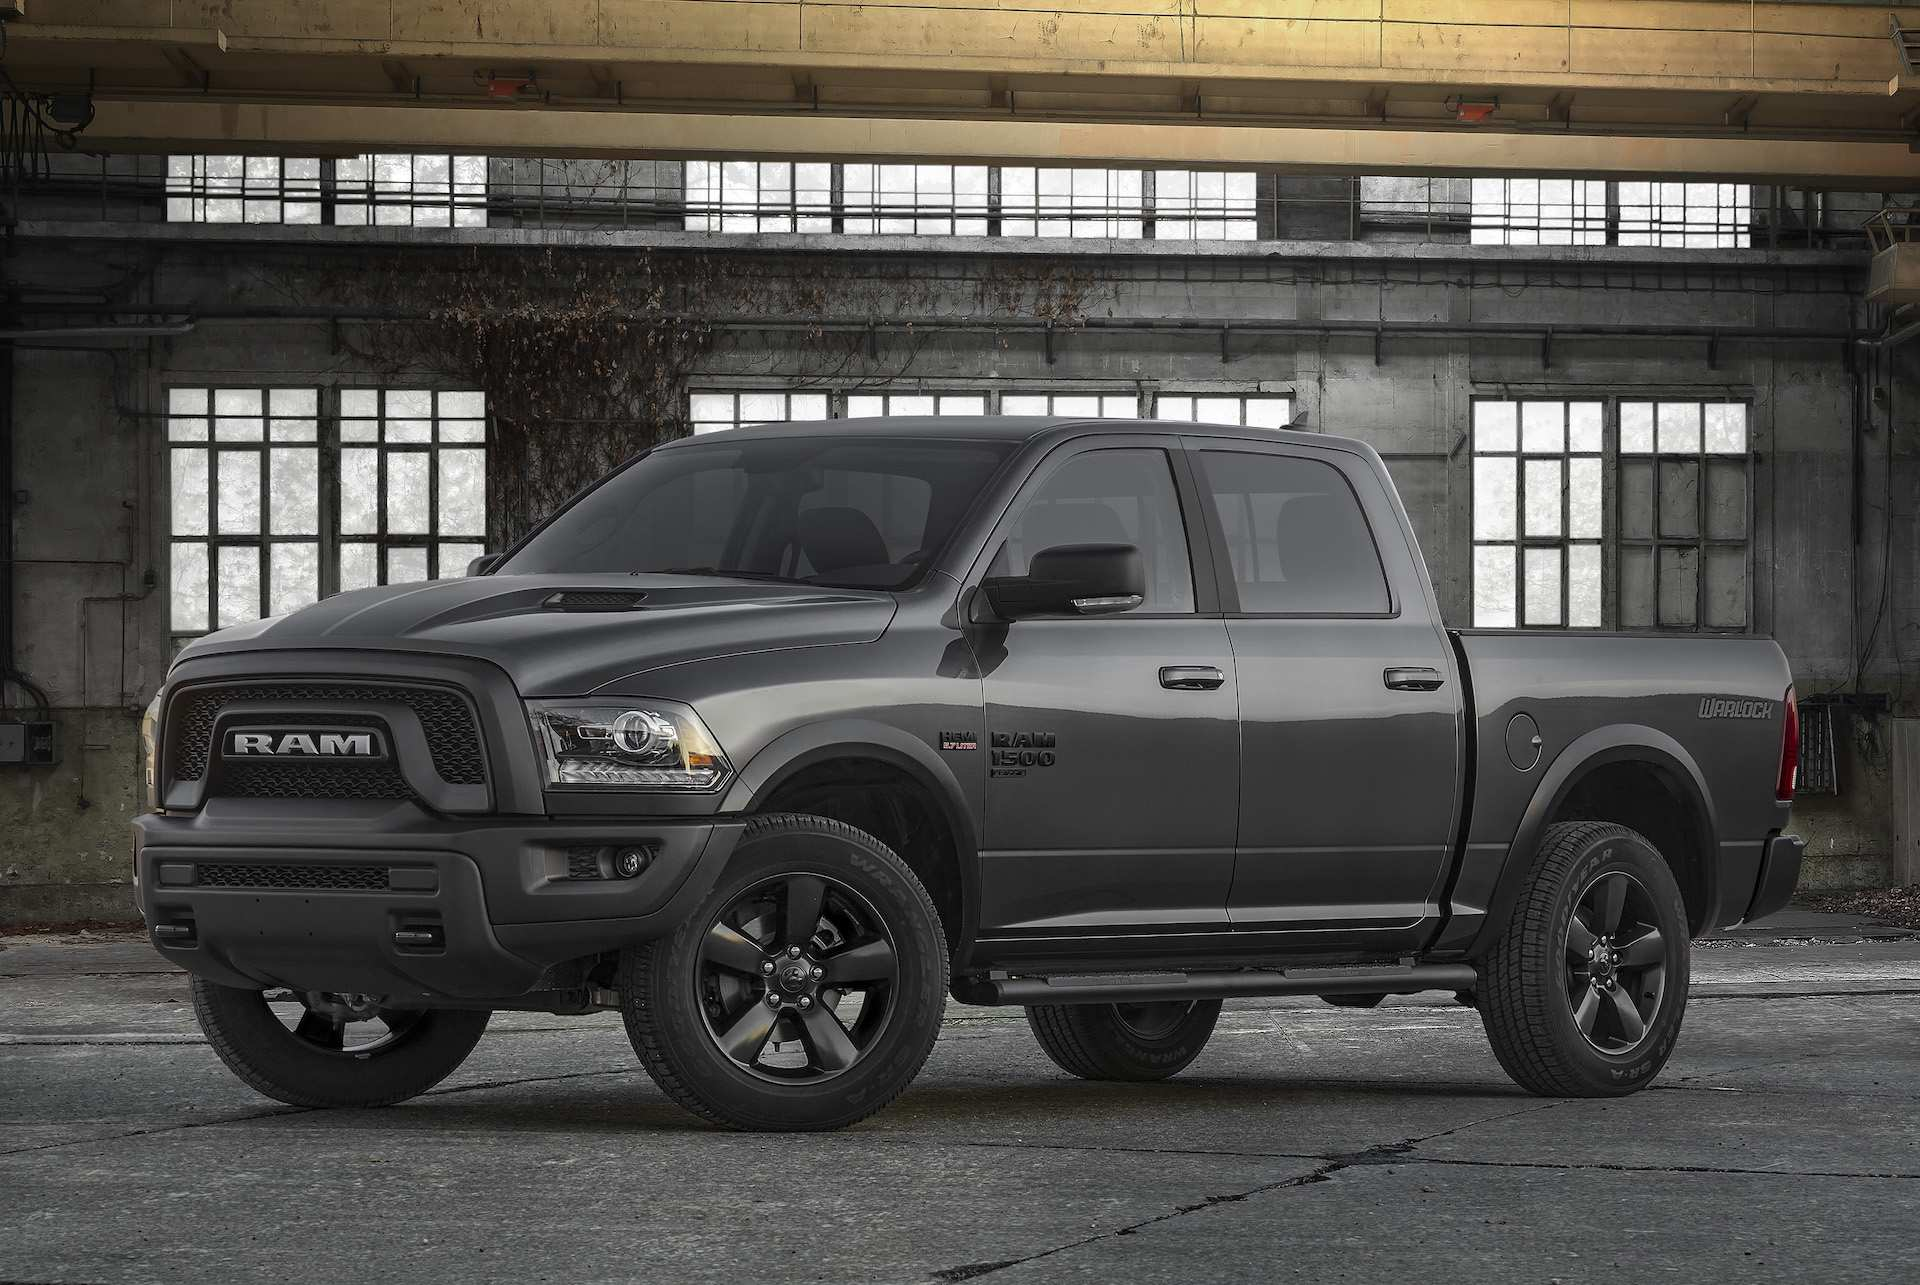 95 Concept of New Dodge Ram 2019 Quad Cab Redesign And Concept Images for New Dodge Ram 2019 Quad Cab Redesign And Concept